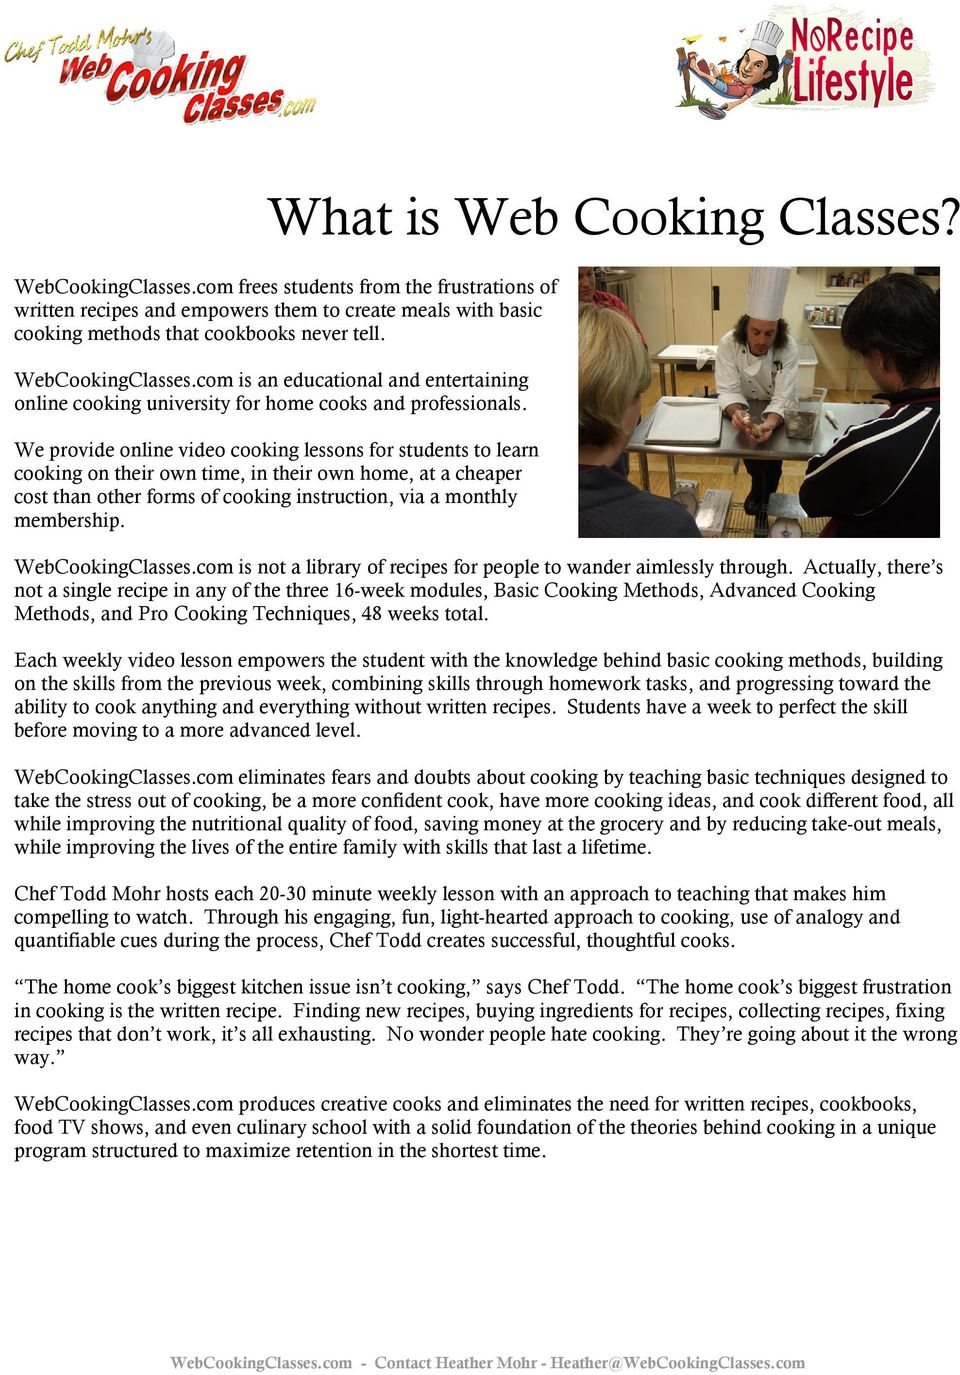 We provide online video cooking lessons for students to learn cooking on their own time, in their own home, at a cheaper cost than other forms of cooking instruction, via a monthly membership.